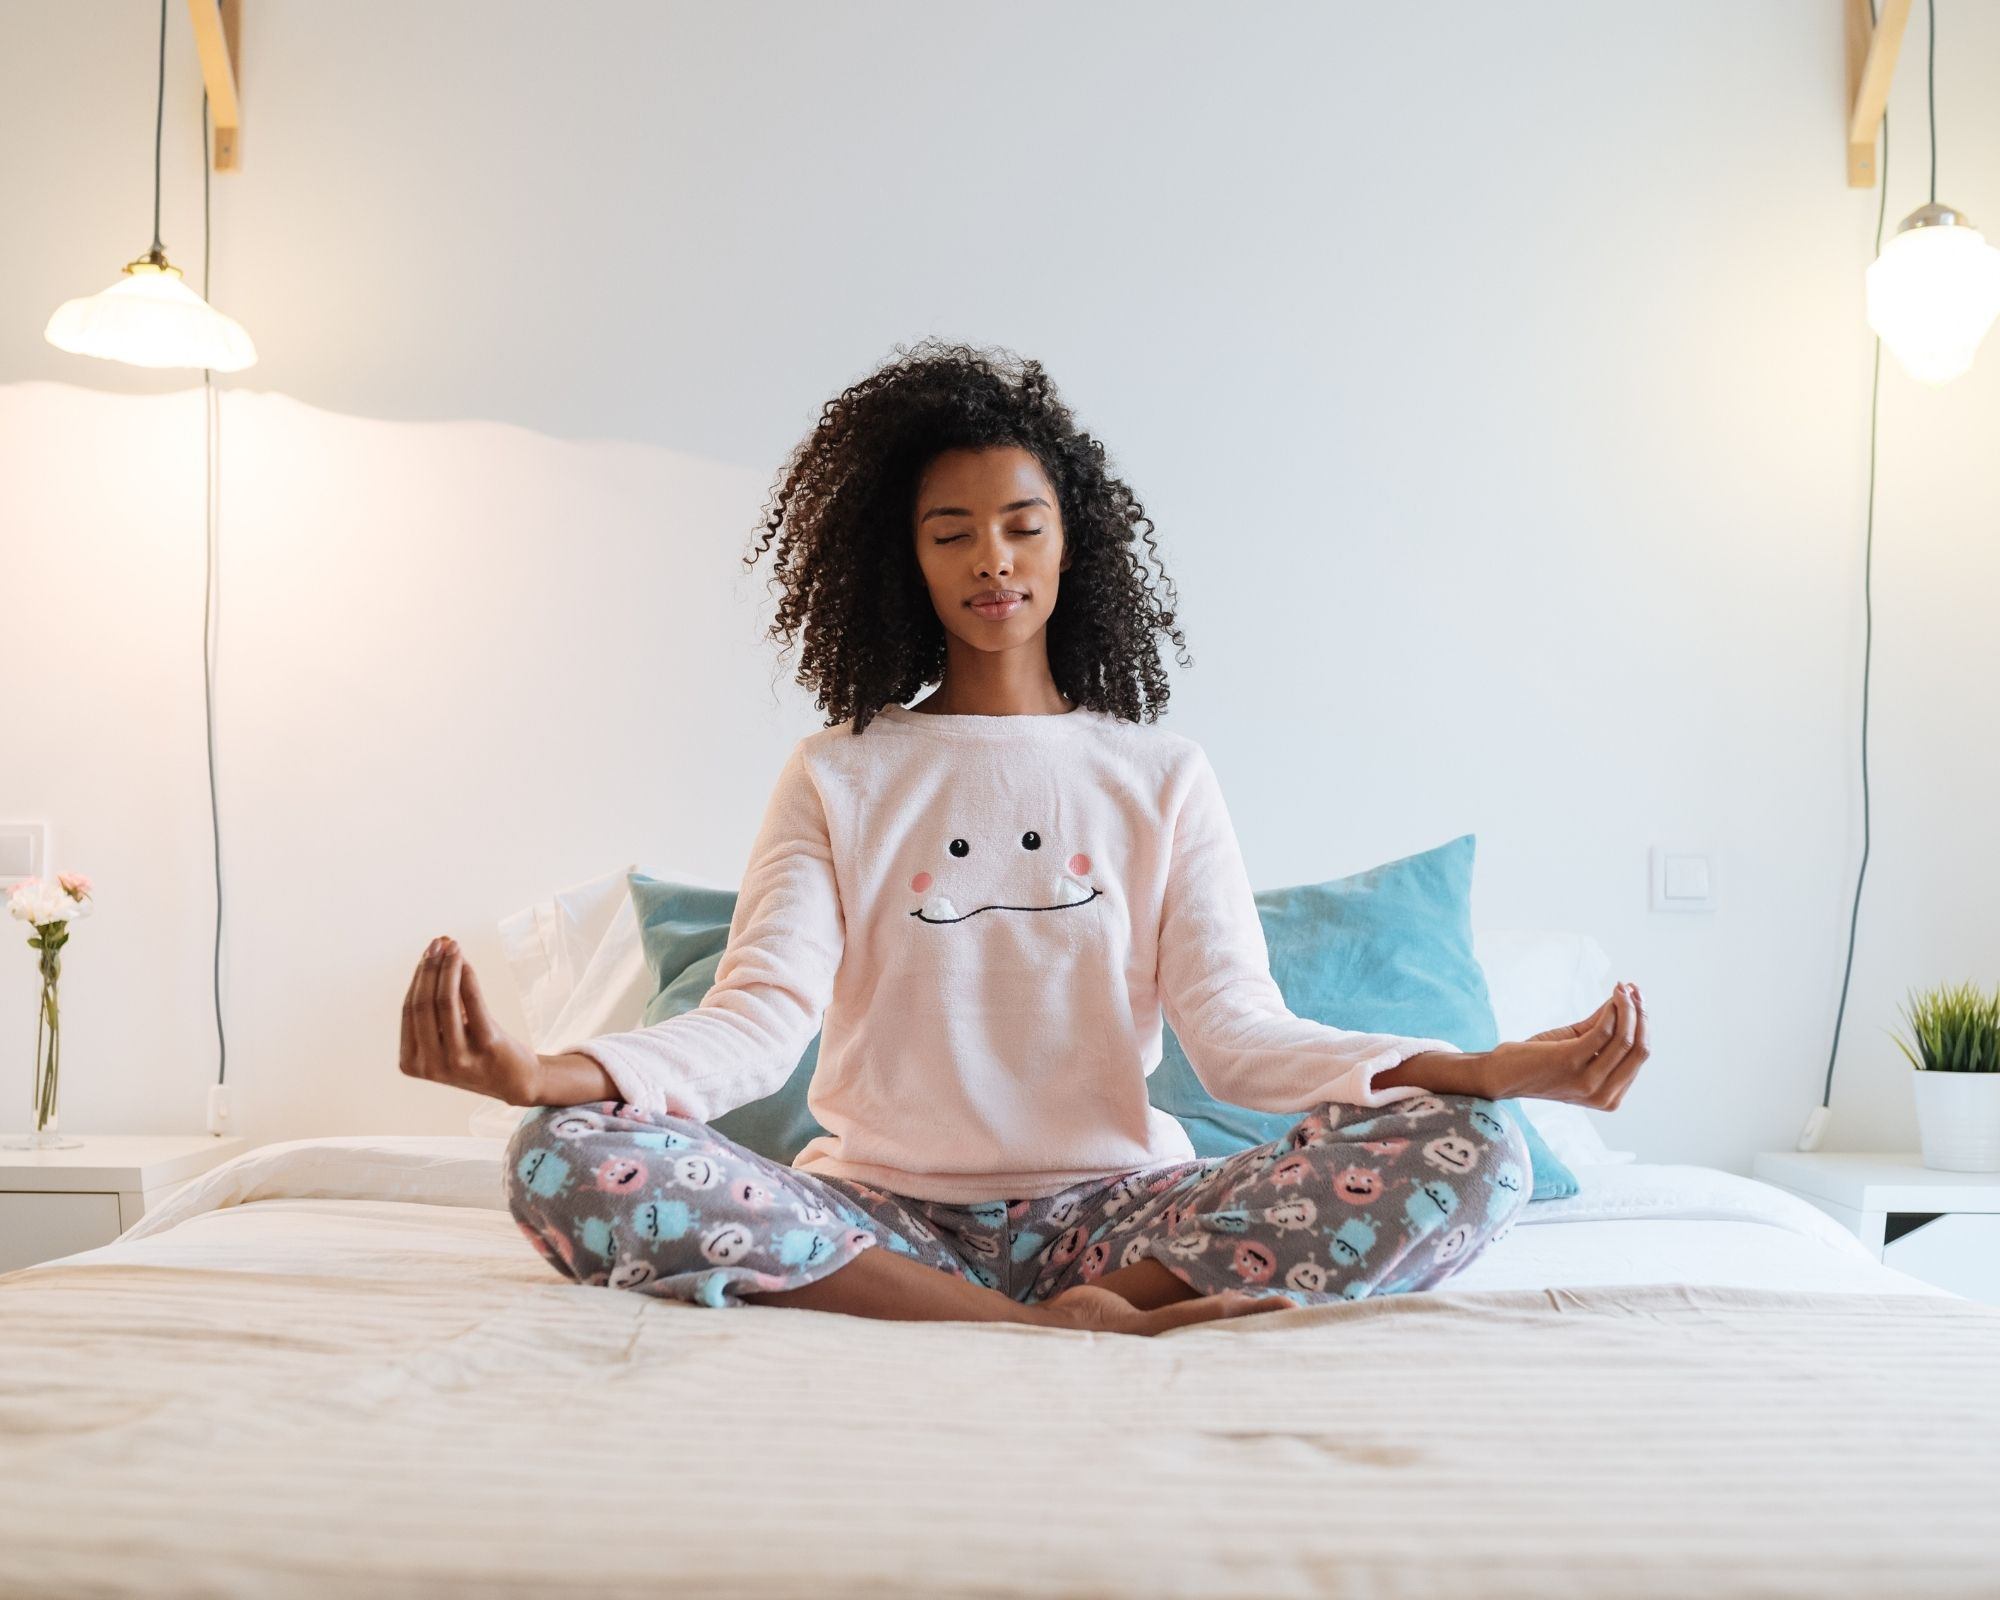 Woman meditating on her bed.